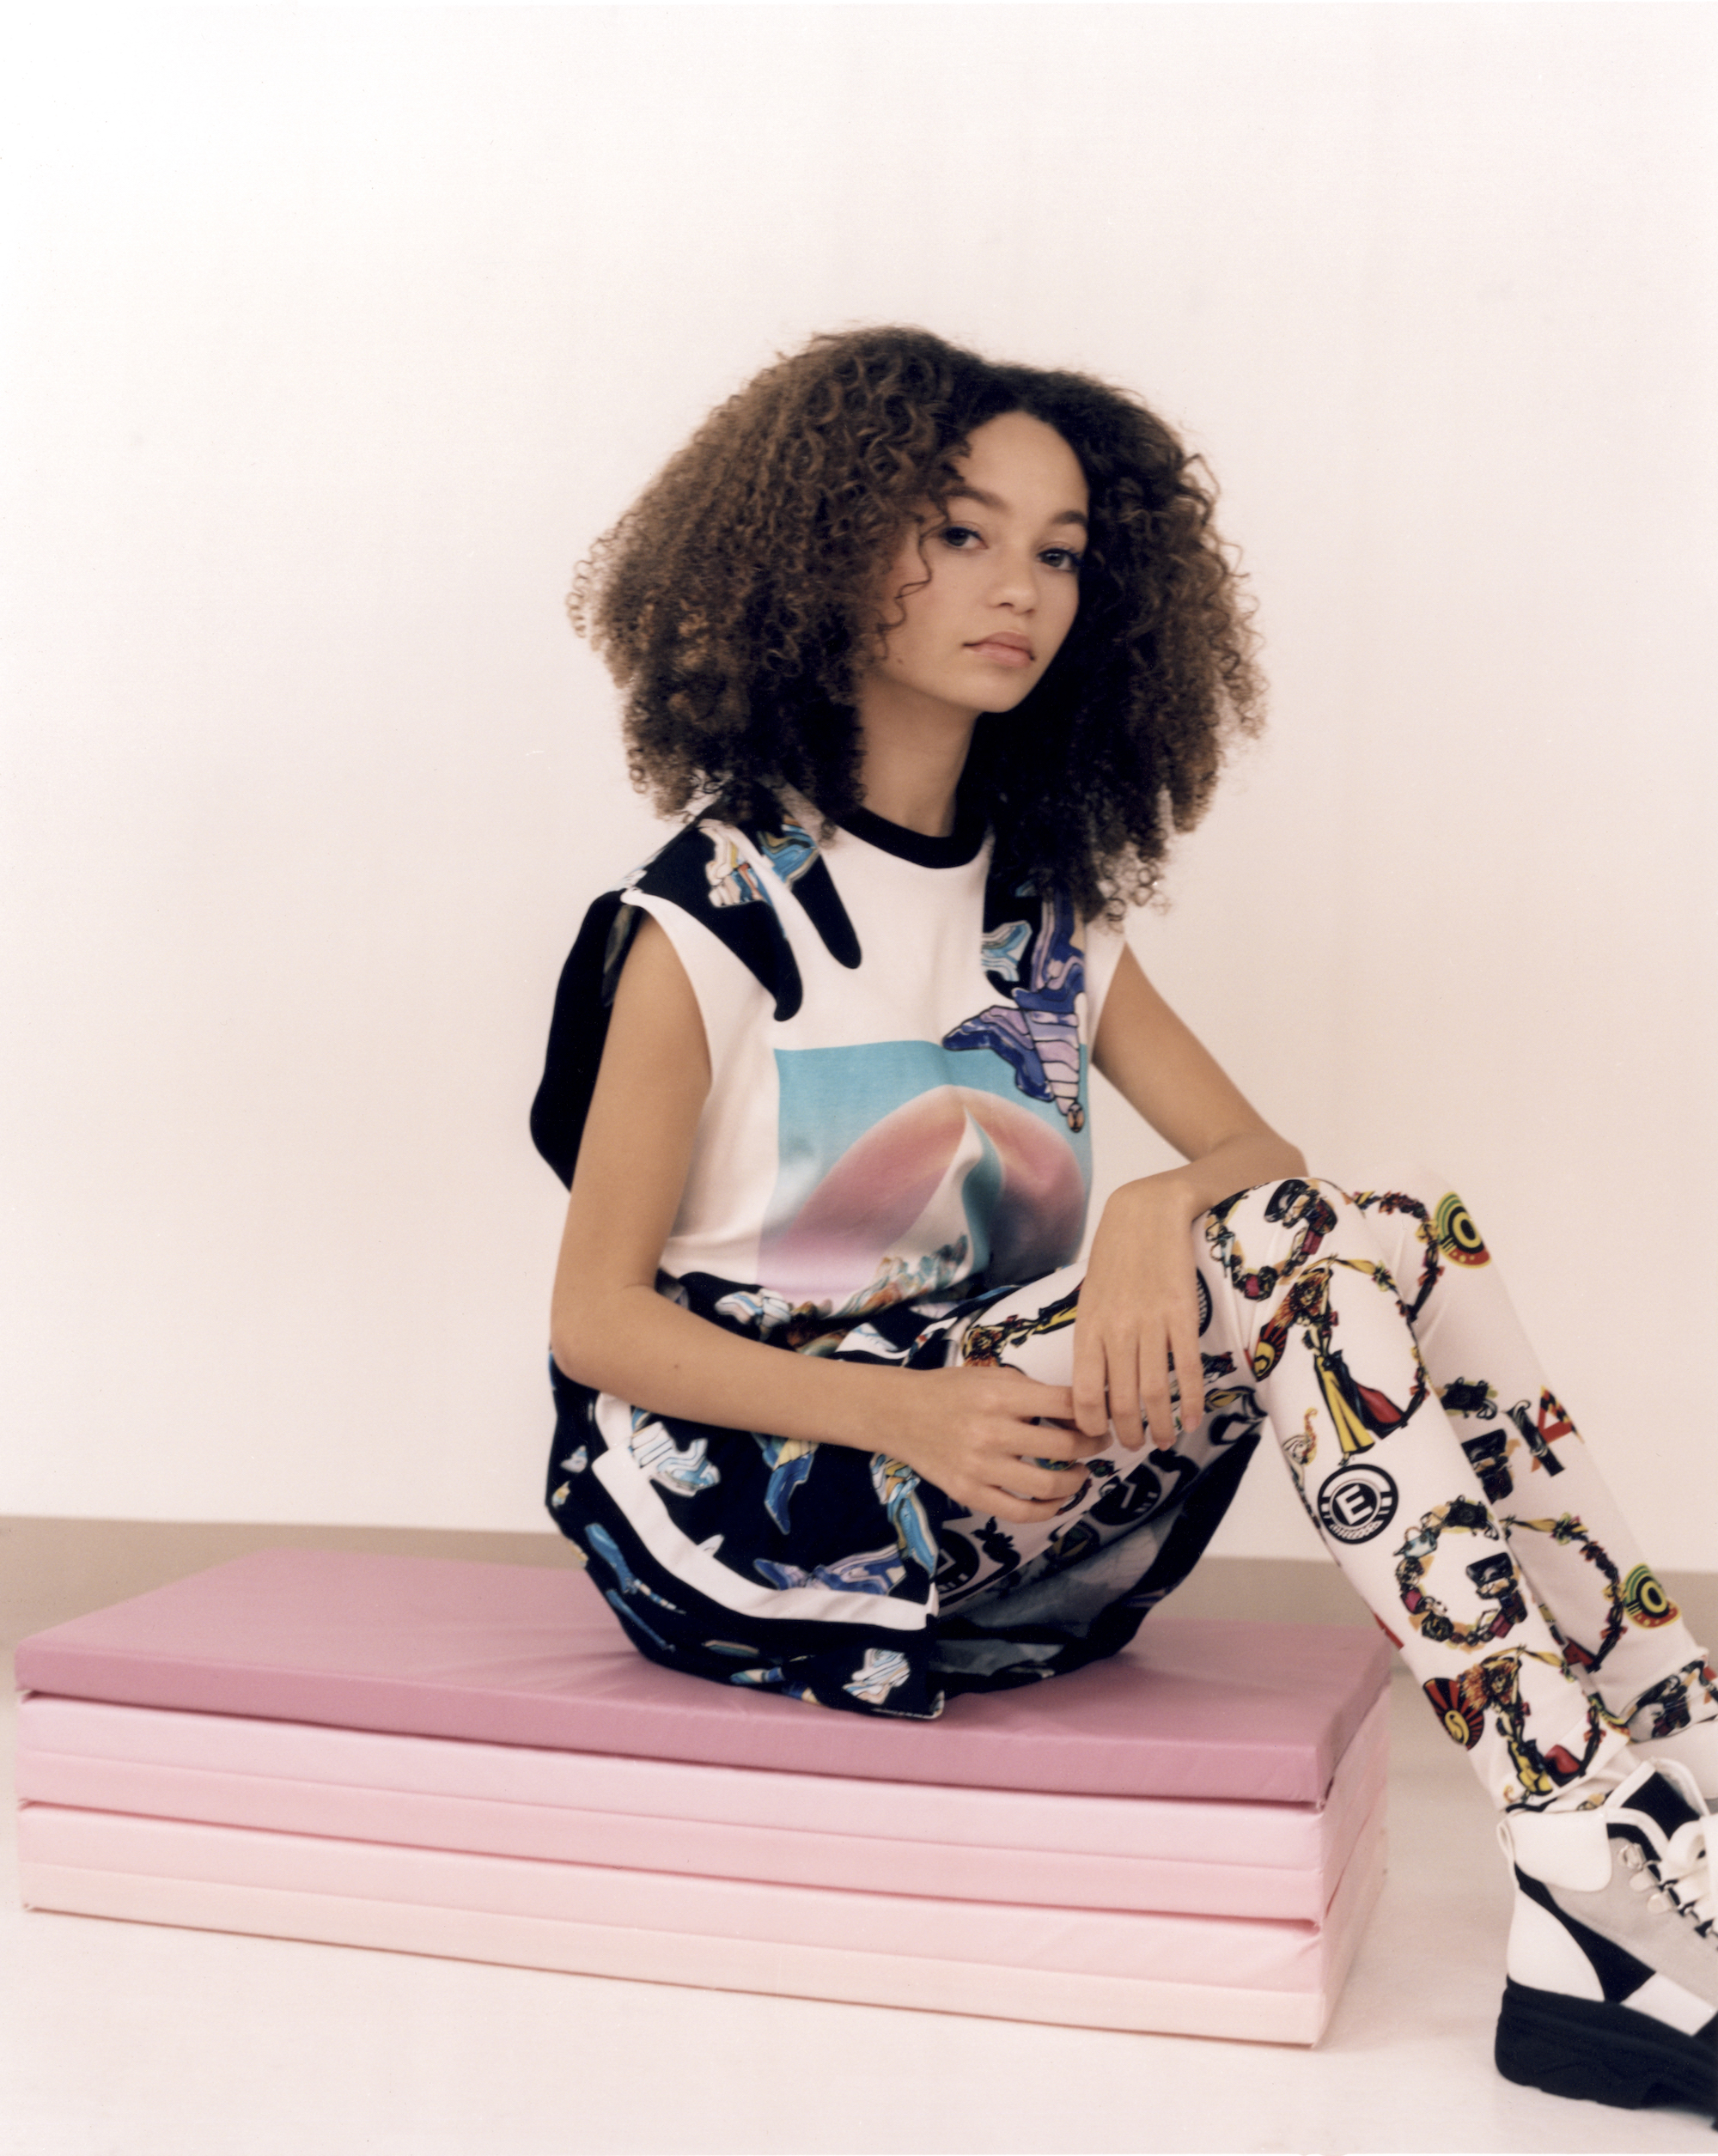 Thandie Newton's daughter Nico Parker, star of Dumbo in Wonderland's Spring 19 issue in graphic dress sat down